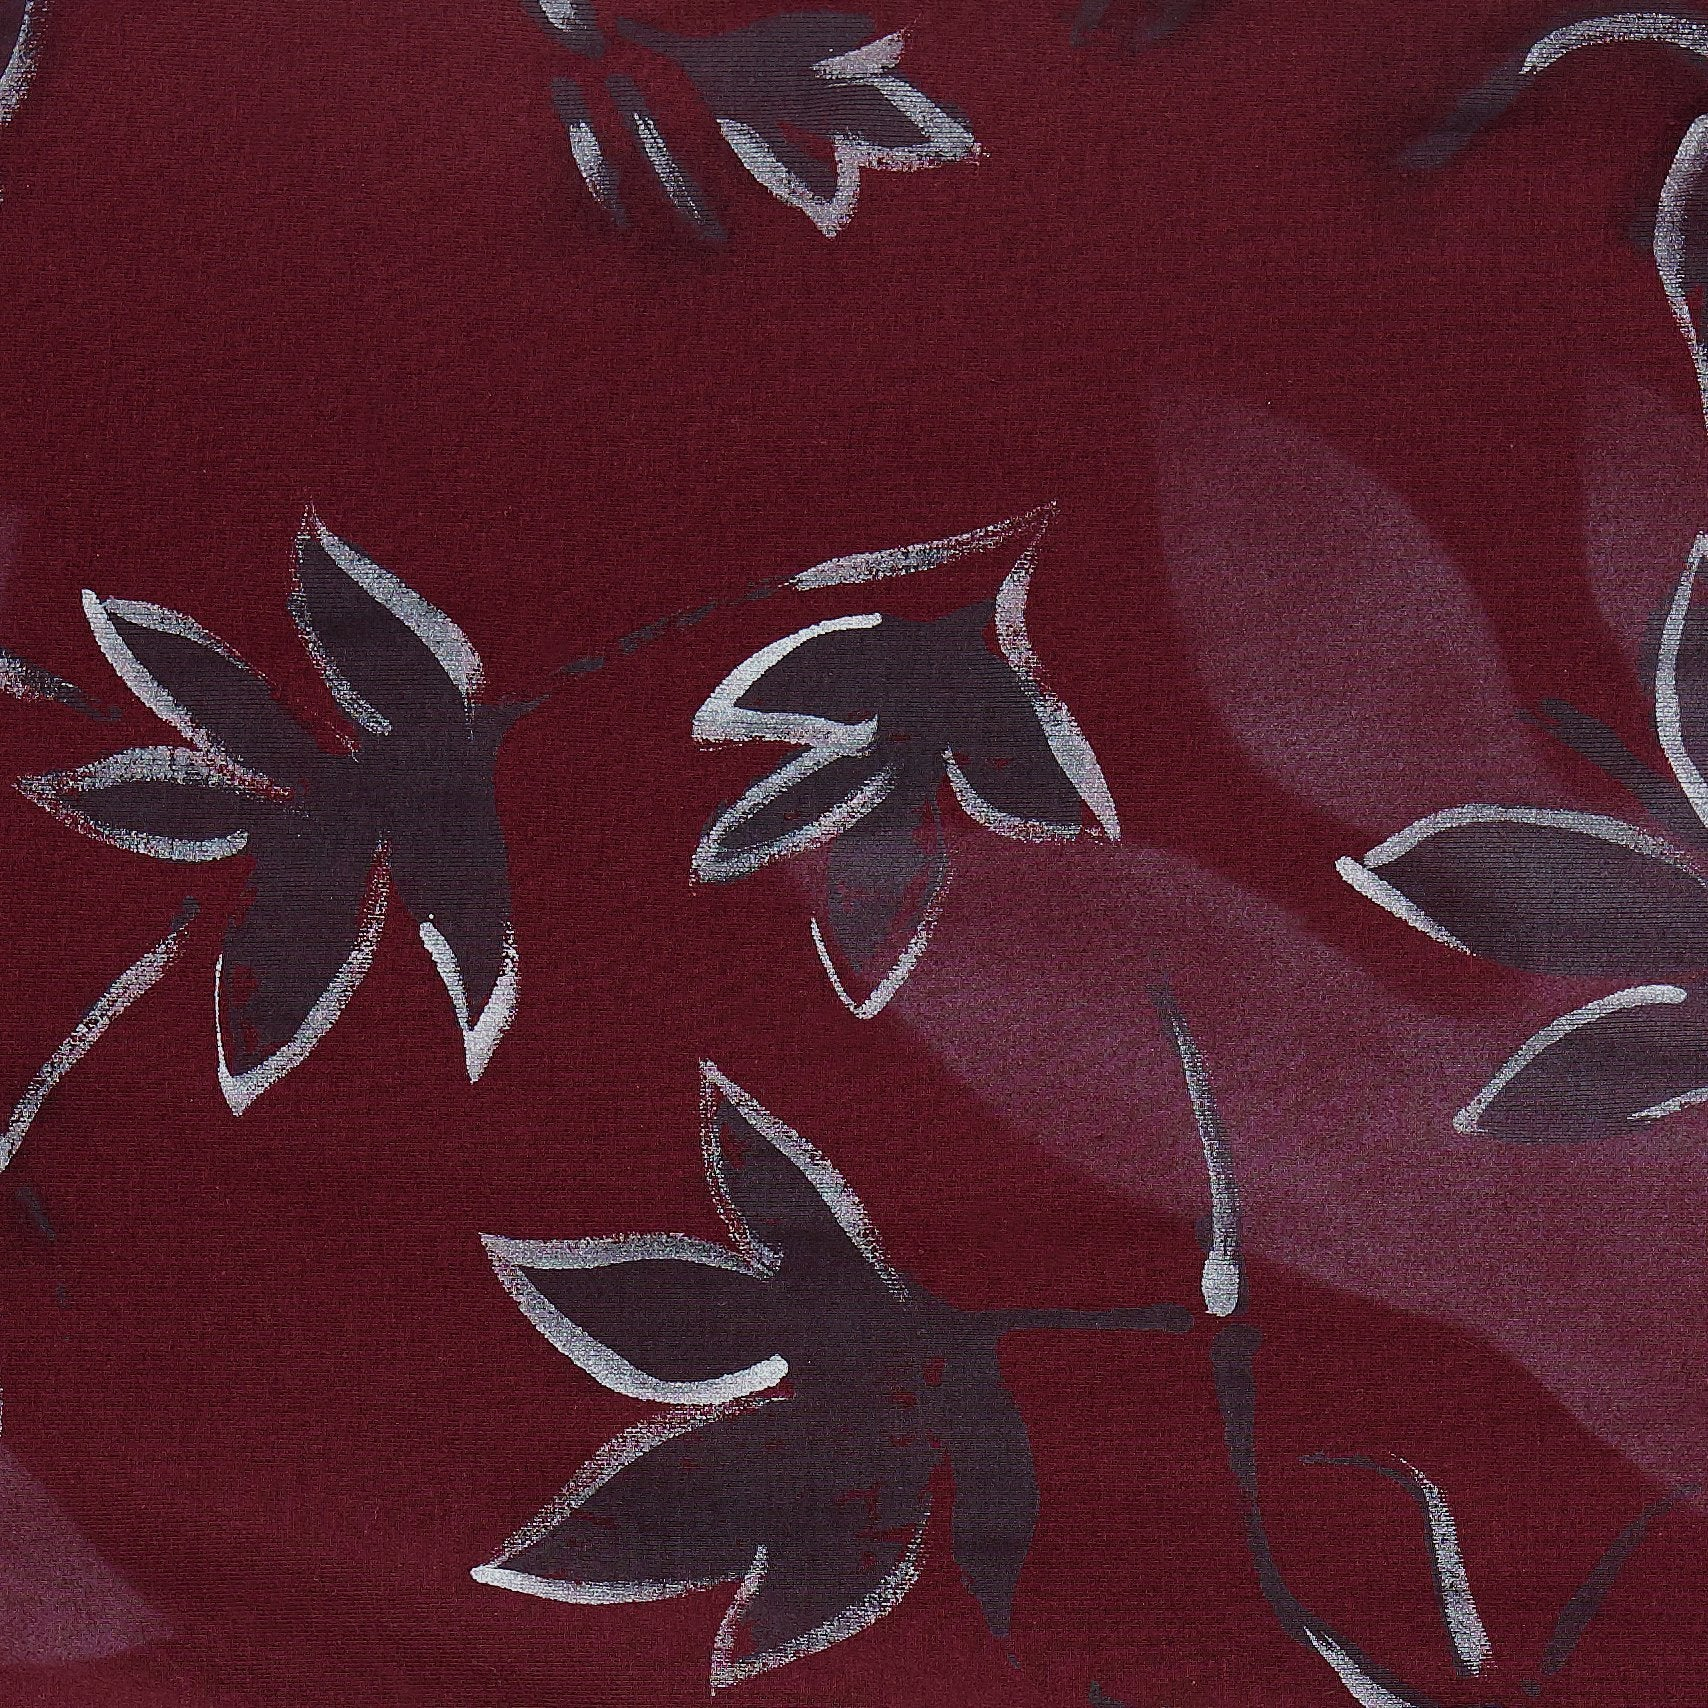 100% Organic Cotton Heavy-weight Rib in Plum Floral Painted Florence design